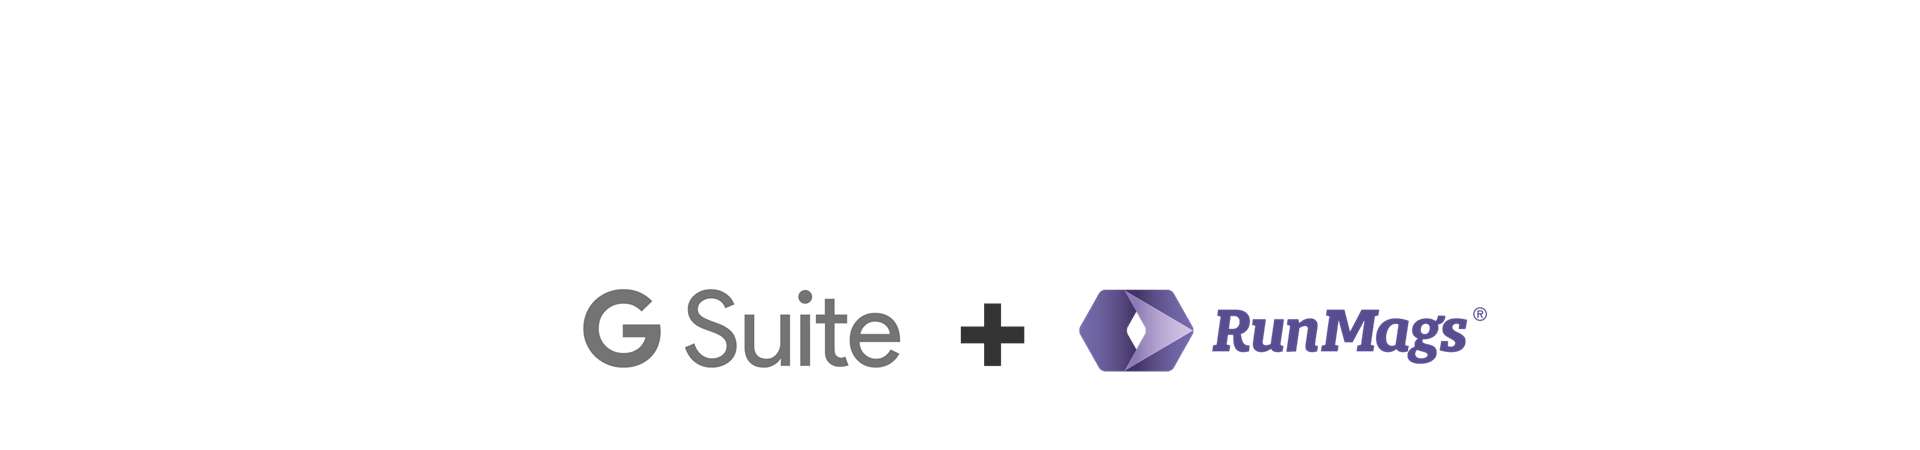 RunMags-Integration-Banner-GSuite.png